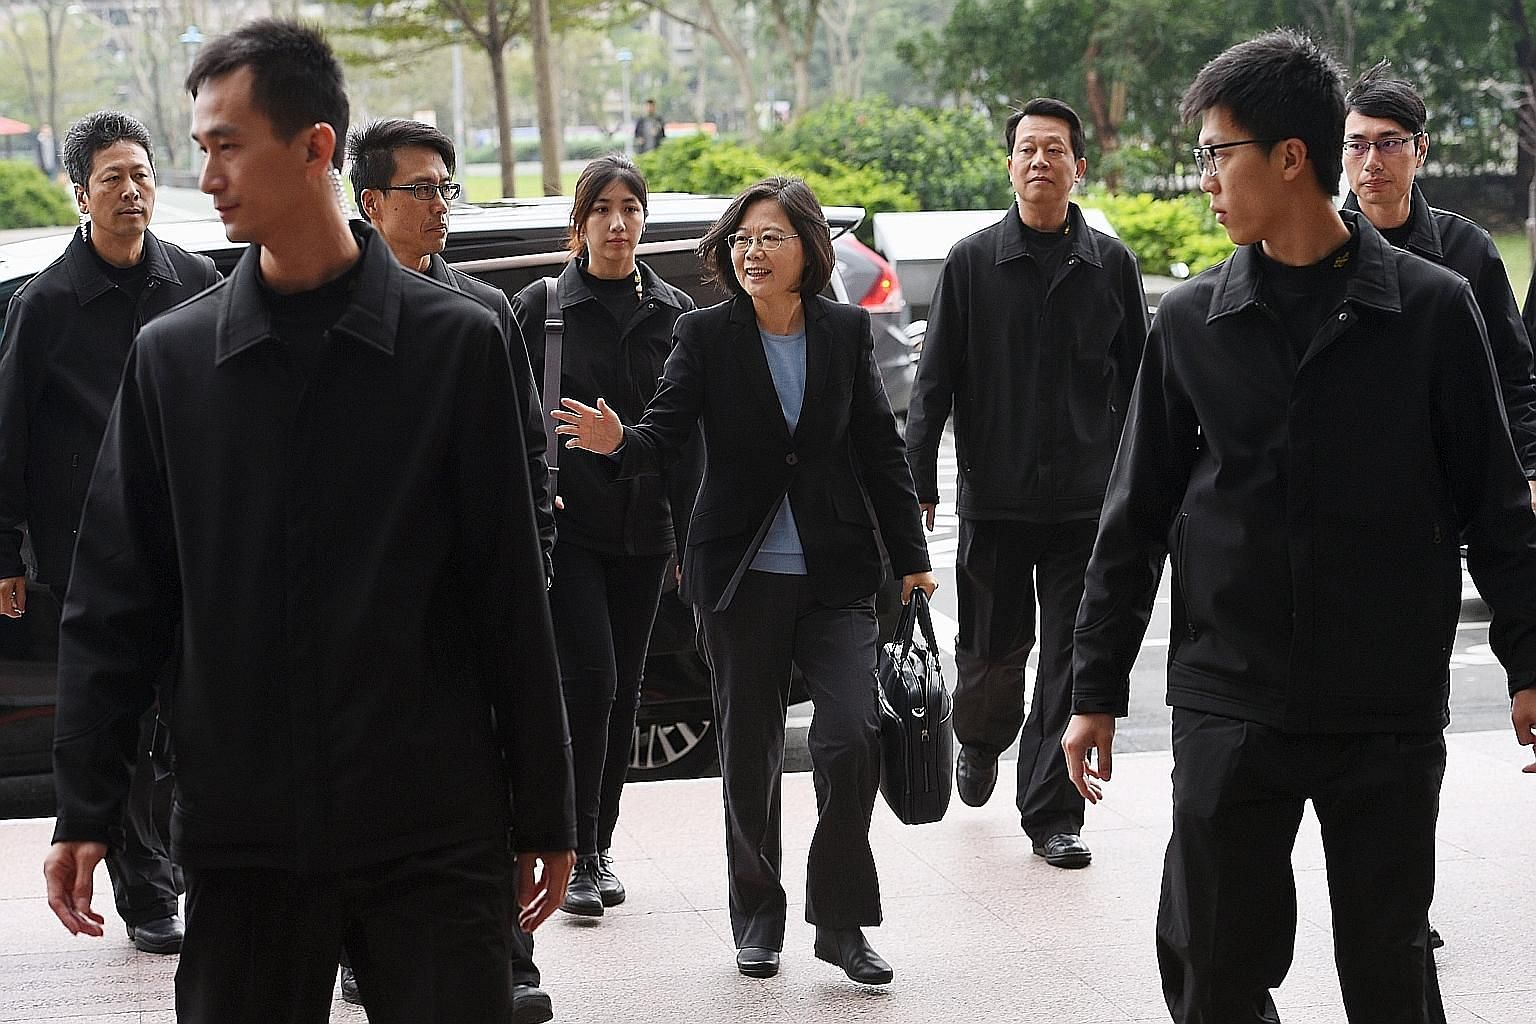 President-elect Tsai Ing-wen arriving at the DPP headquarters in Taipei yesterday, following the party's victory in last Saturday's presidential and parliamentary elections. The new DPP-majority legislature will be sworn in on Feb 1, but with a KMT p